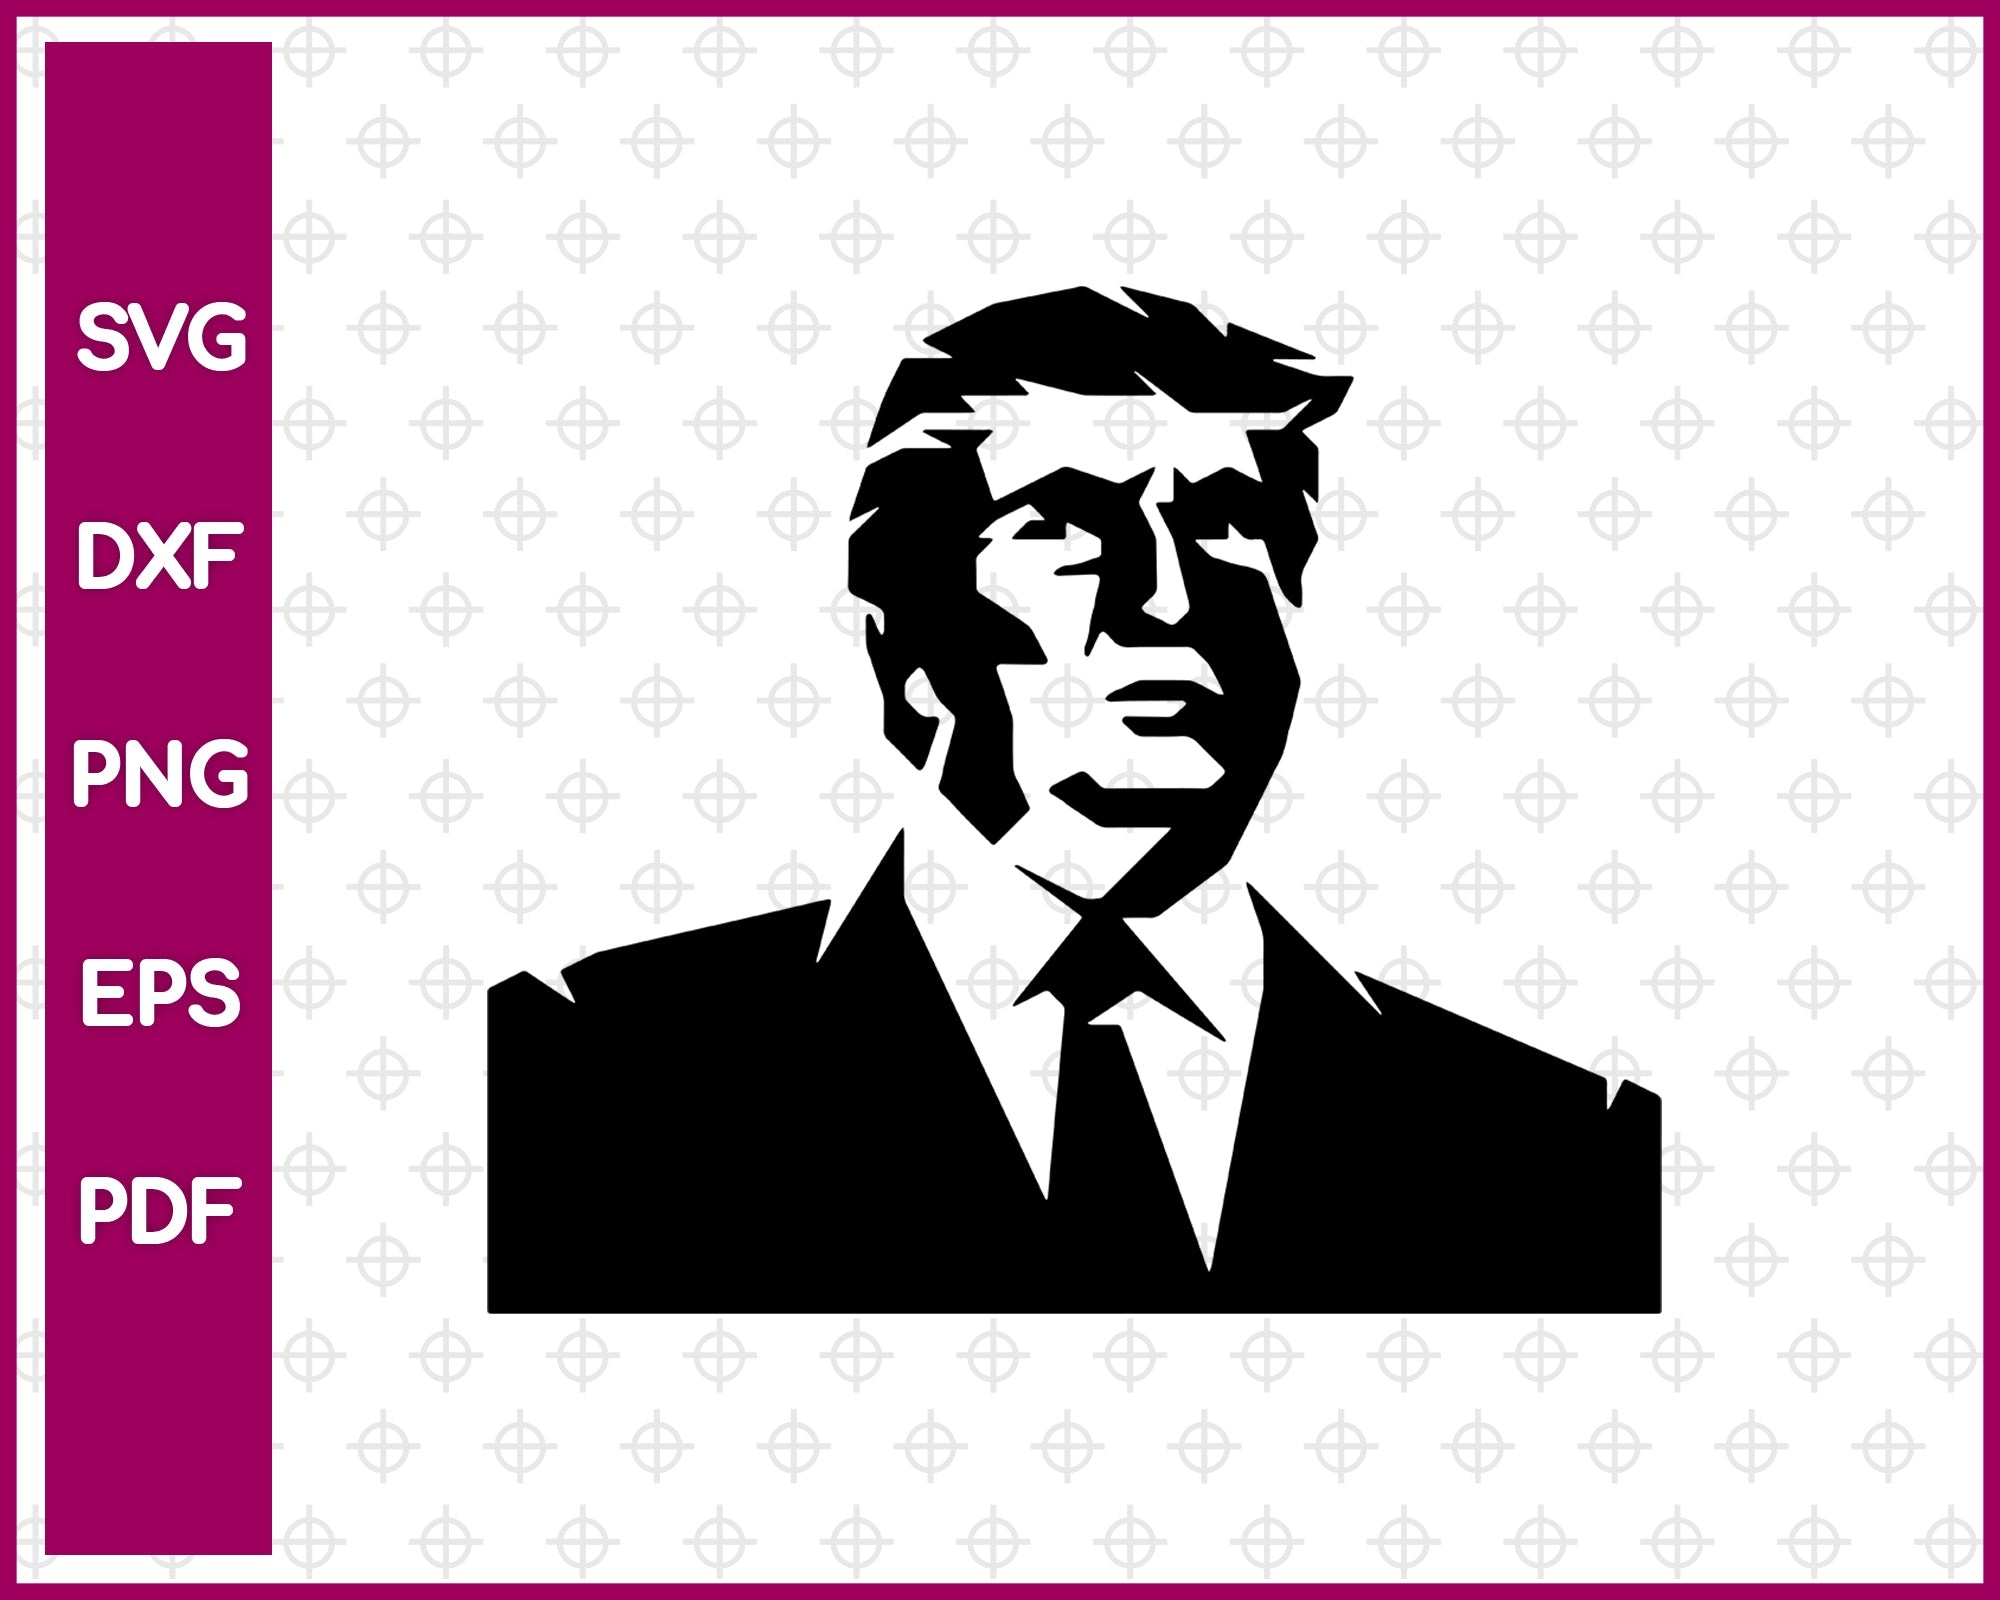 Donald Trump svg file, President United States svg dxf png eps pdf, vector decal for cricut clipart, silhouette vinyl sticker monogram